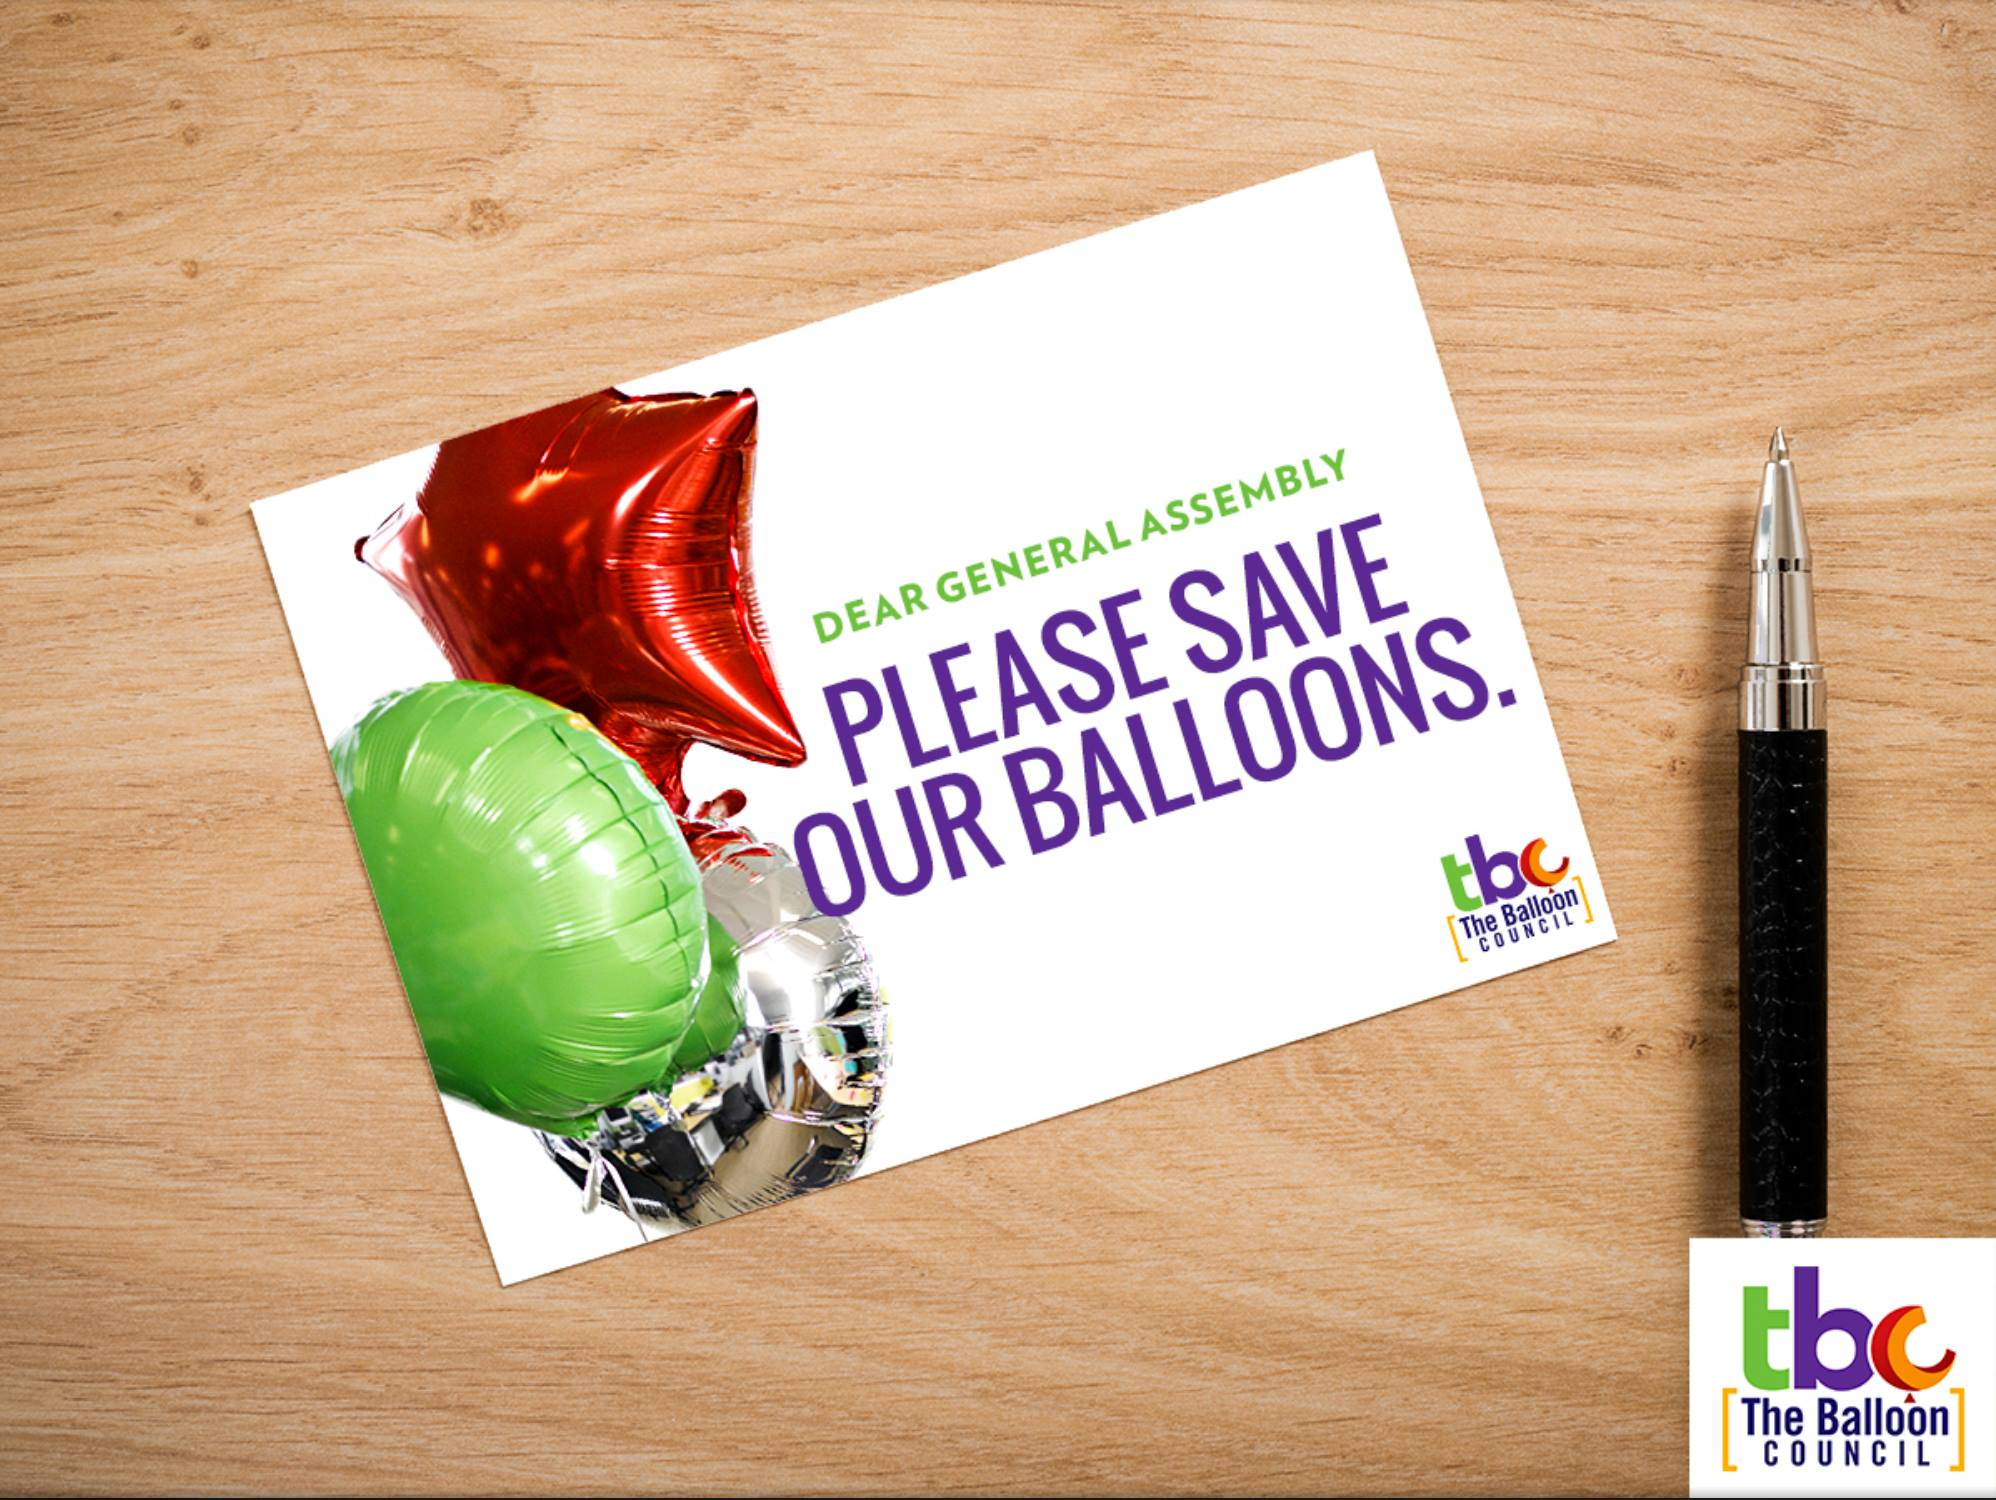 The Balloon Council - Please Save Our Balloons